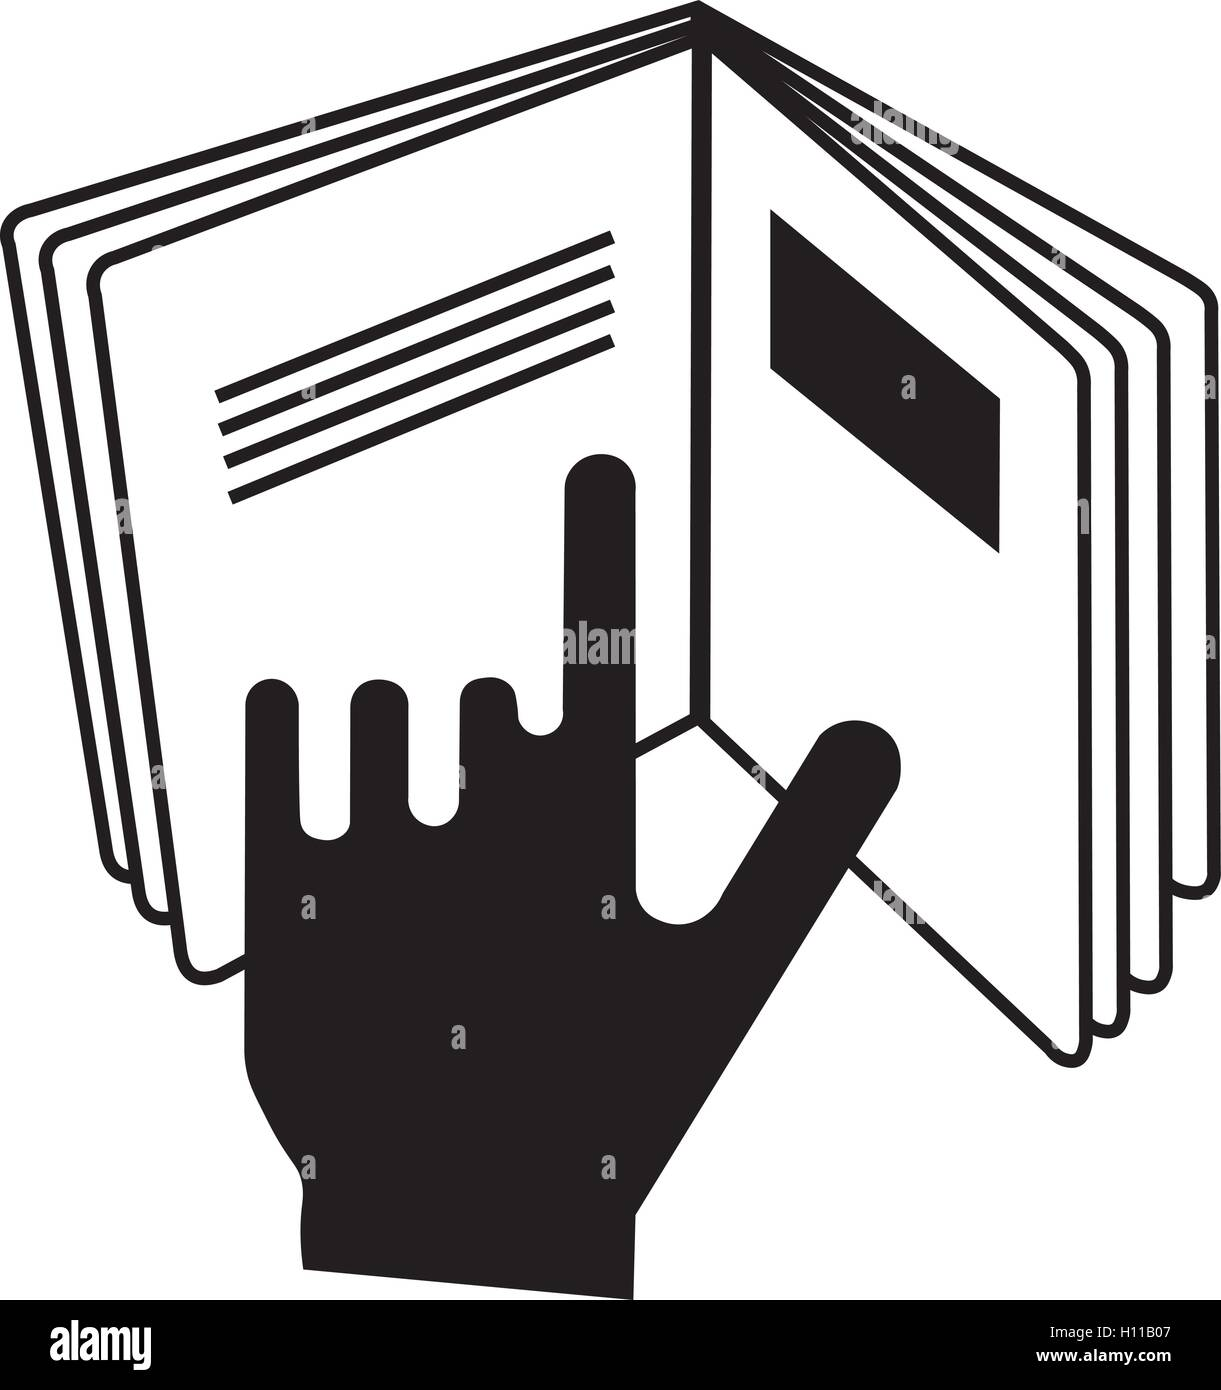 Refer to insert cosmetics symbol, a hand pointing at a book icon, vector illustration. - Stock Image